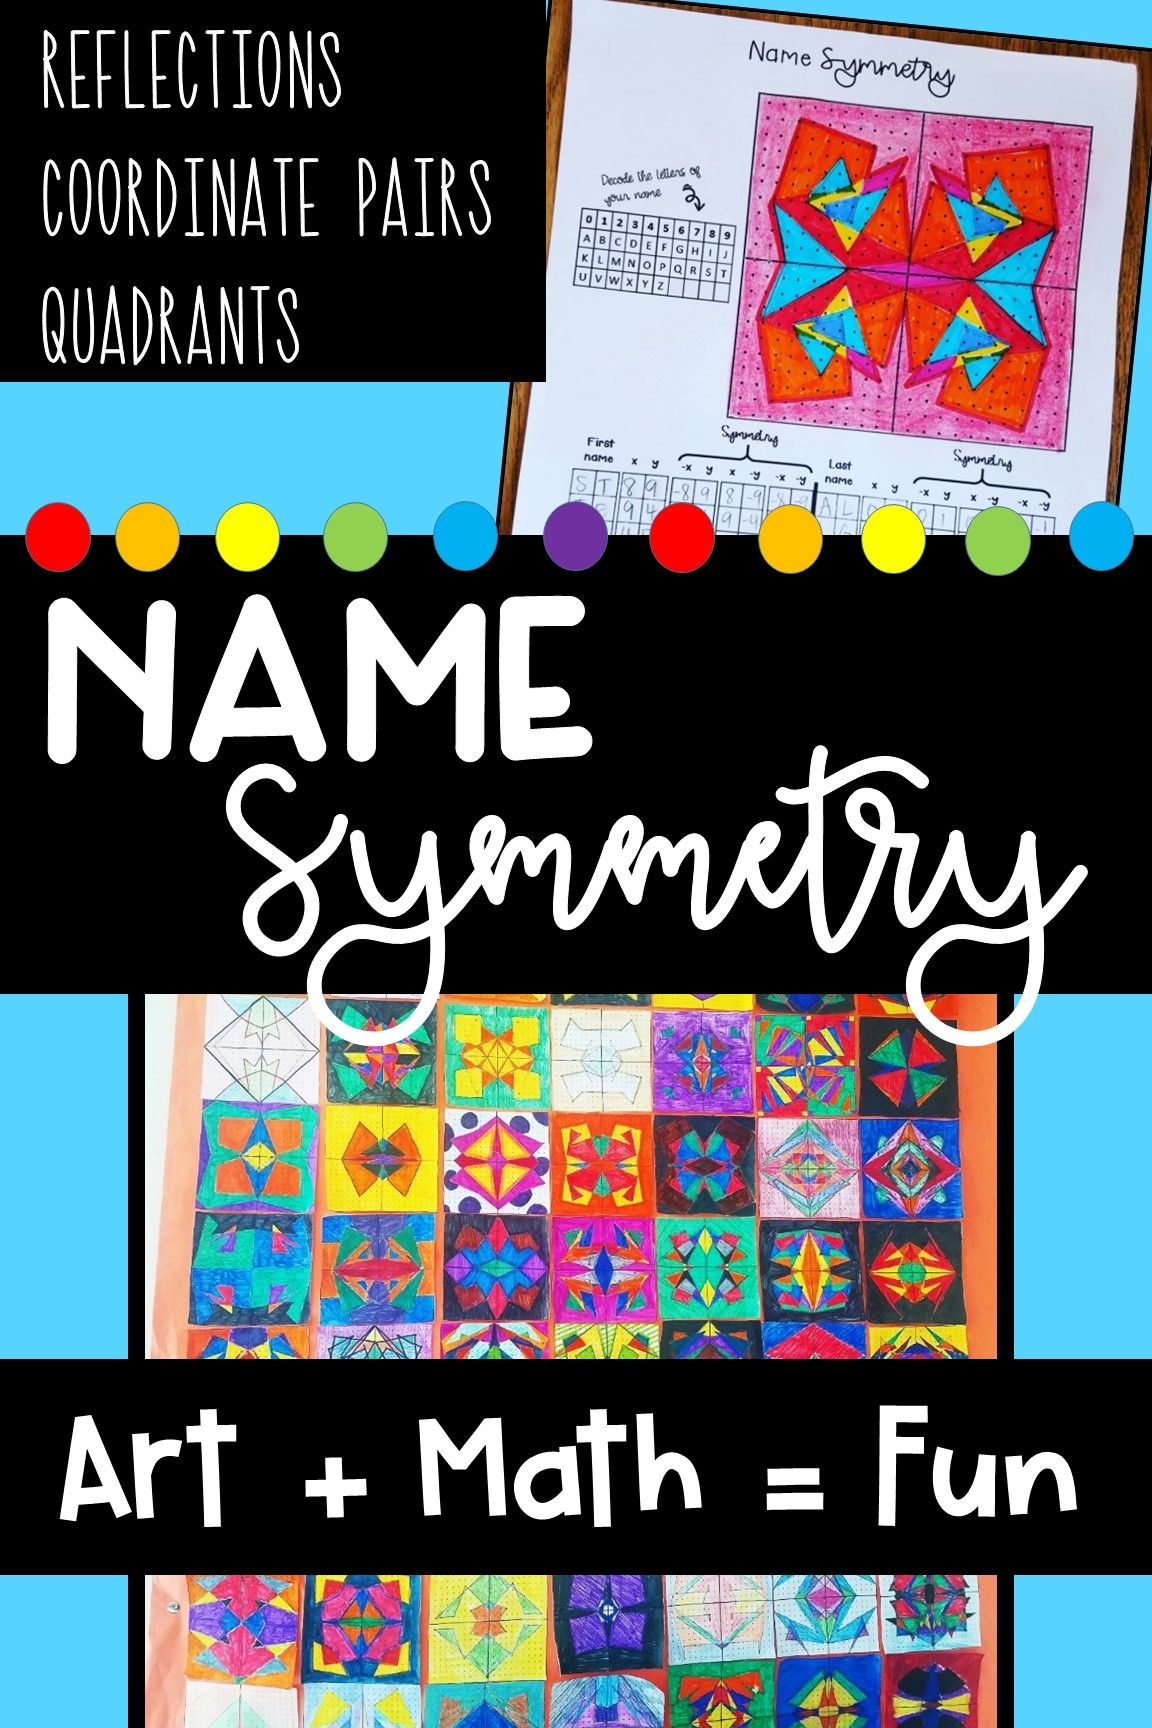 Looking For A Fun Way To Incorporate Art In Your Math Class Students Have Fun With This Activity By Prac Math Art Activities Symmetry Activities Math Projects [ 1728 x 1152 Pixel ]